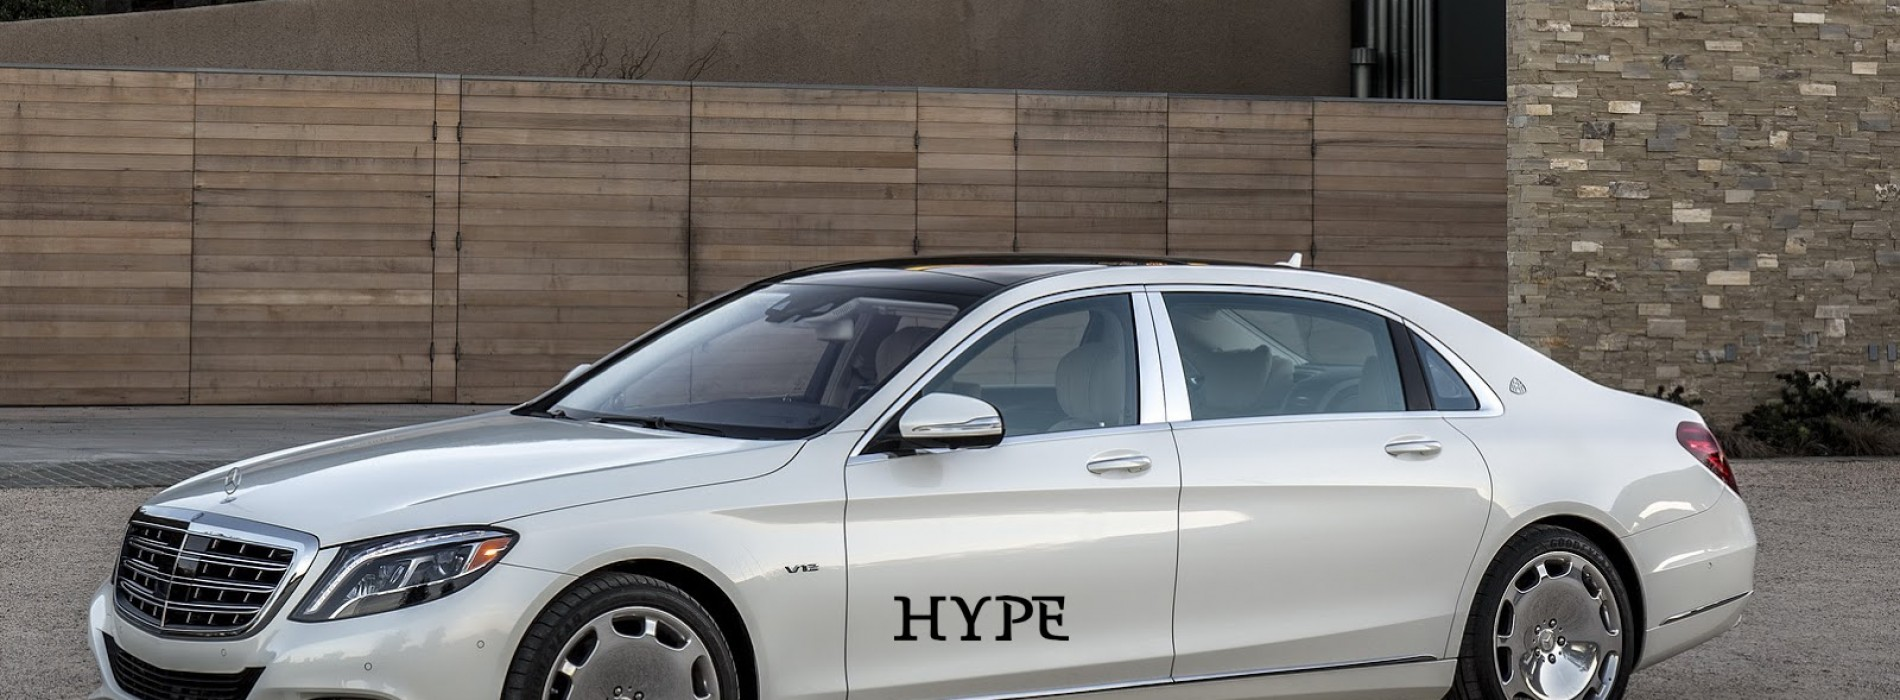 Gift your dad a day with his dream car using HYPE